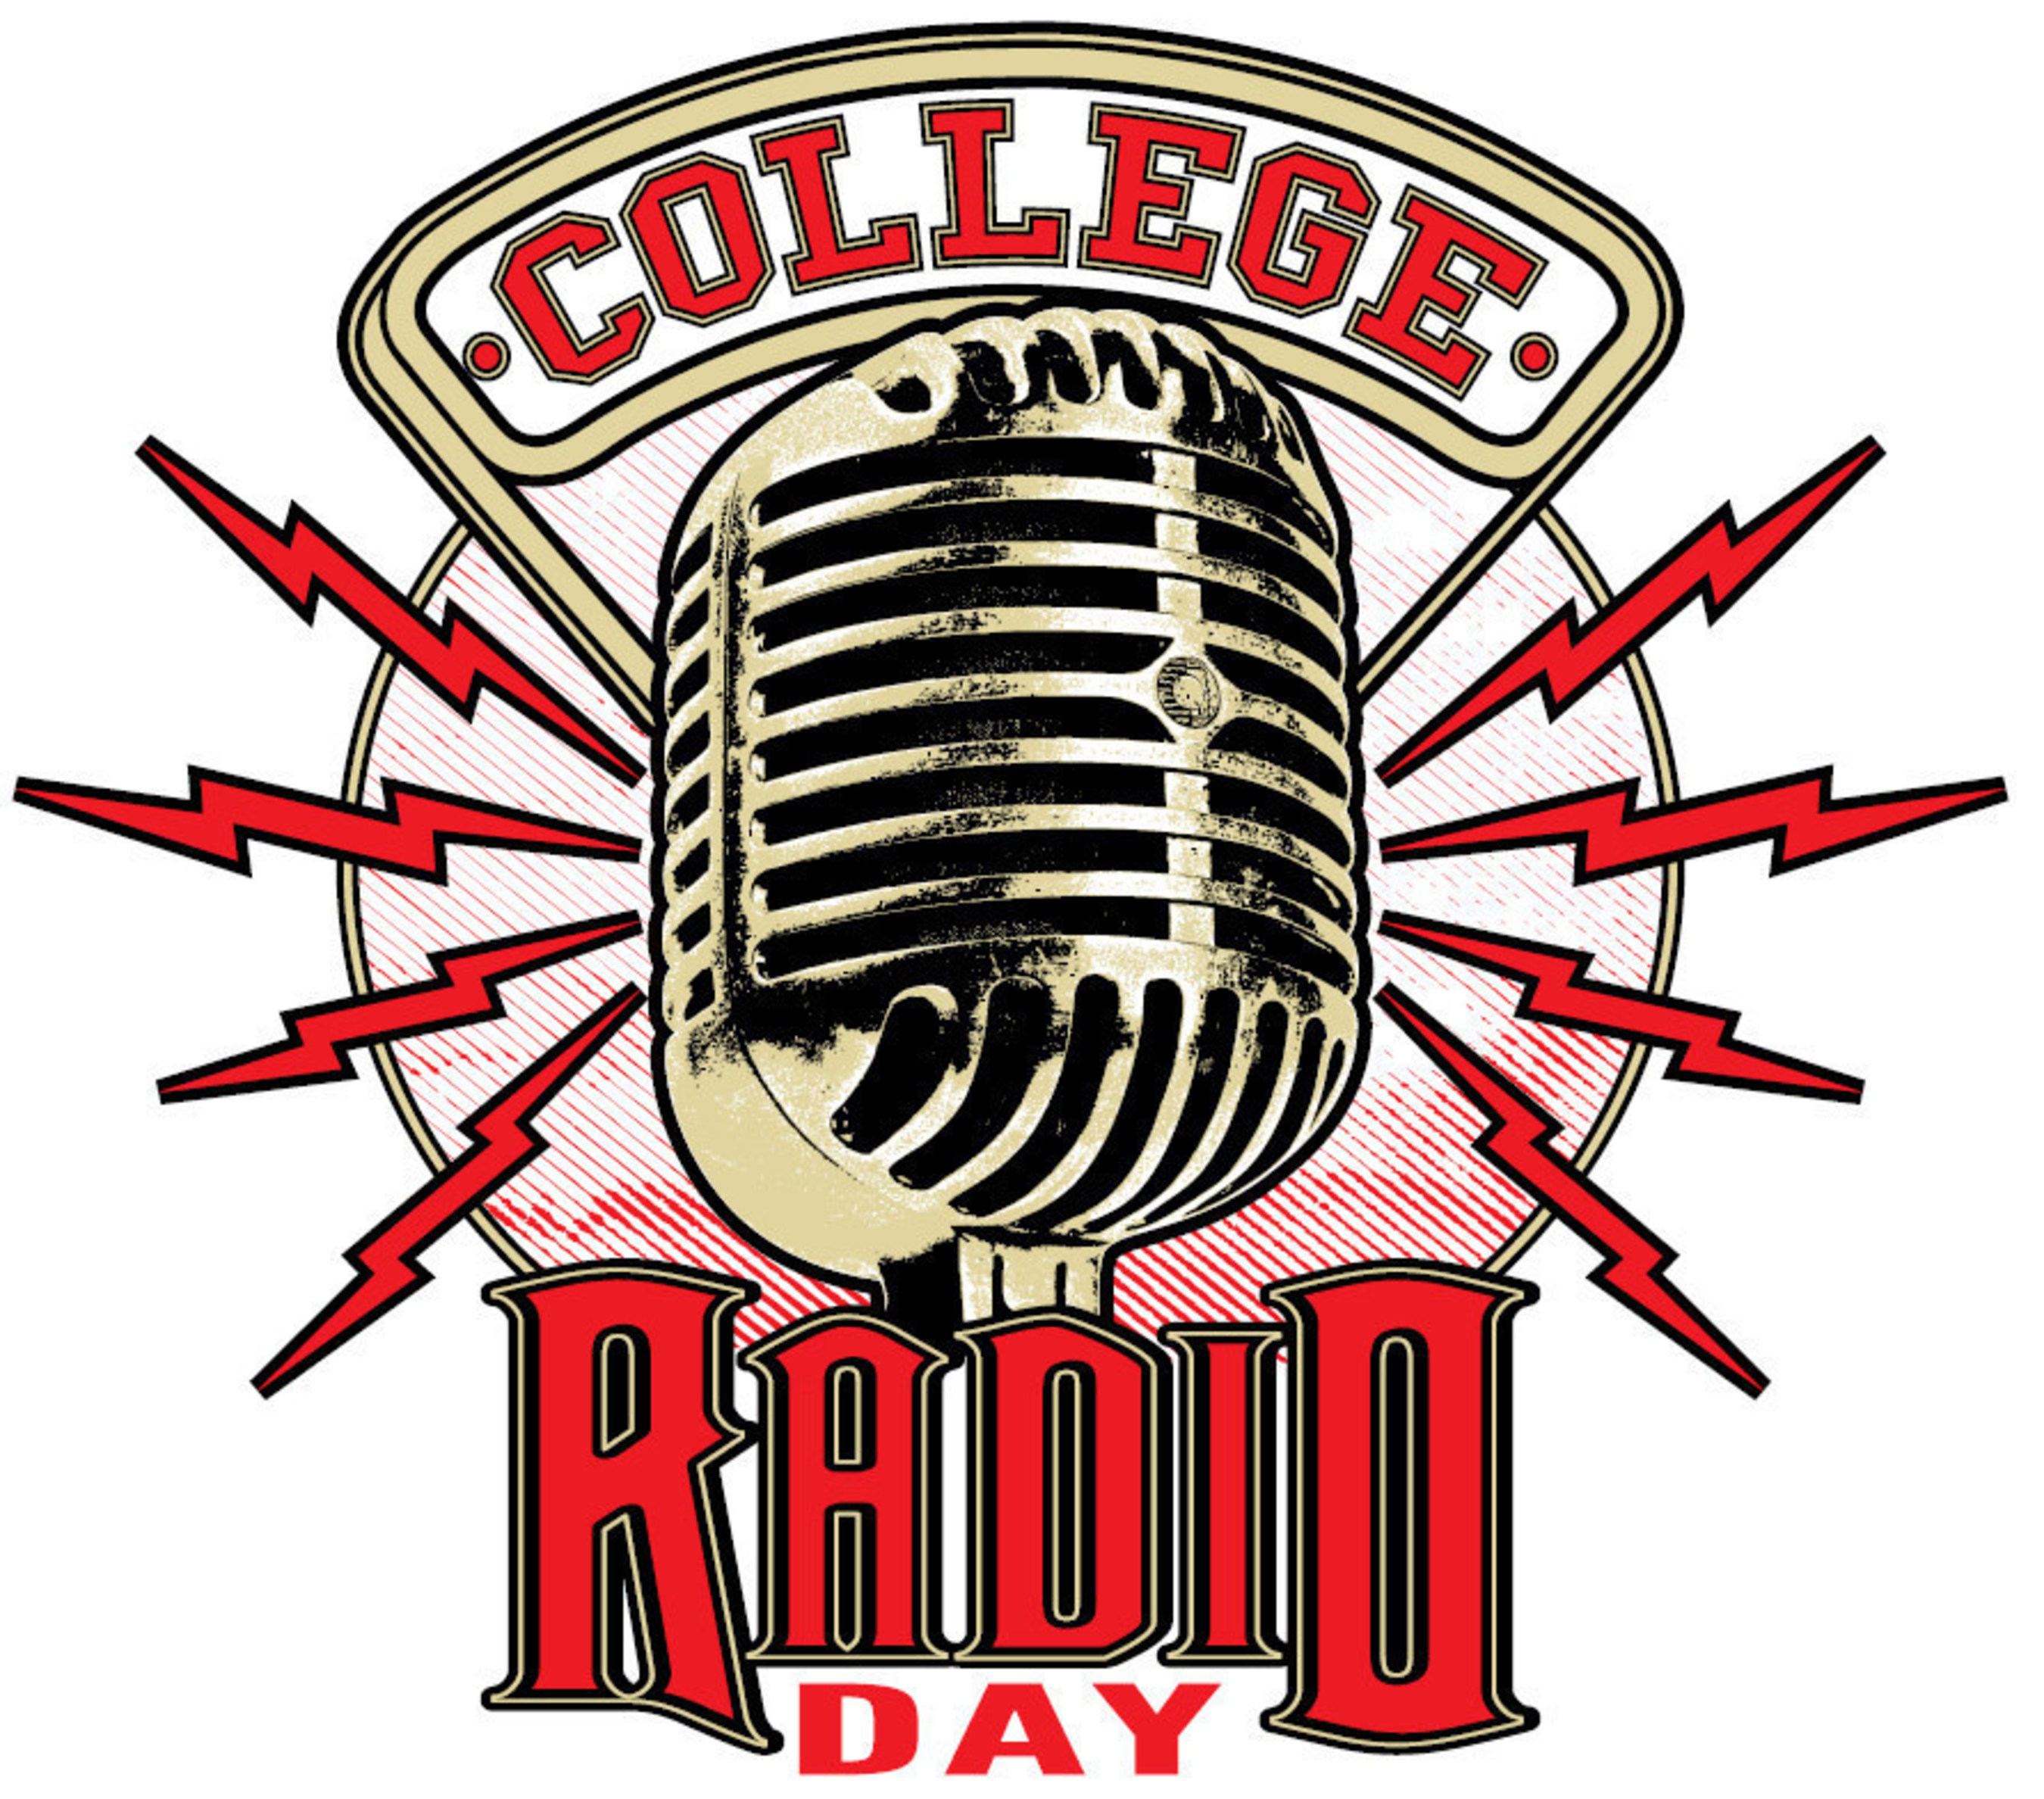 College Radio Day is this Friday, November 4, with Recognition from President Obama, Sean Lennon and Dave Mustaine